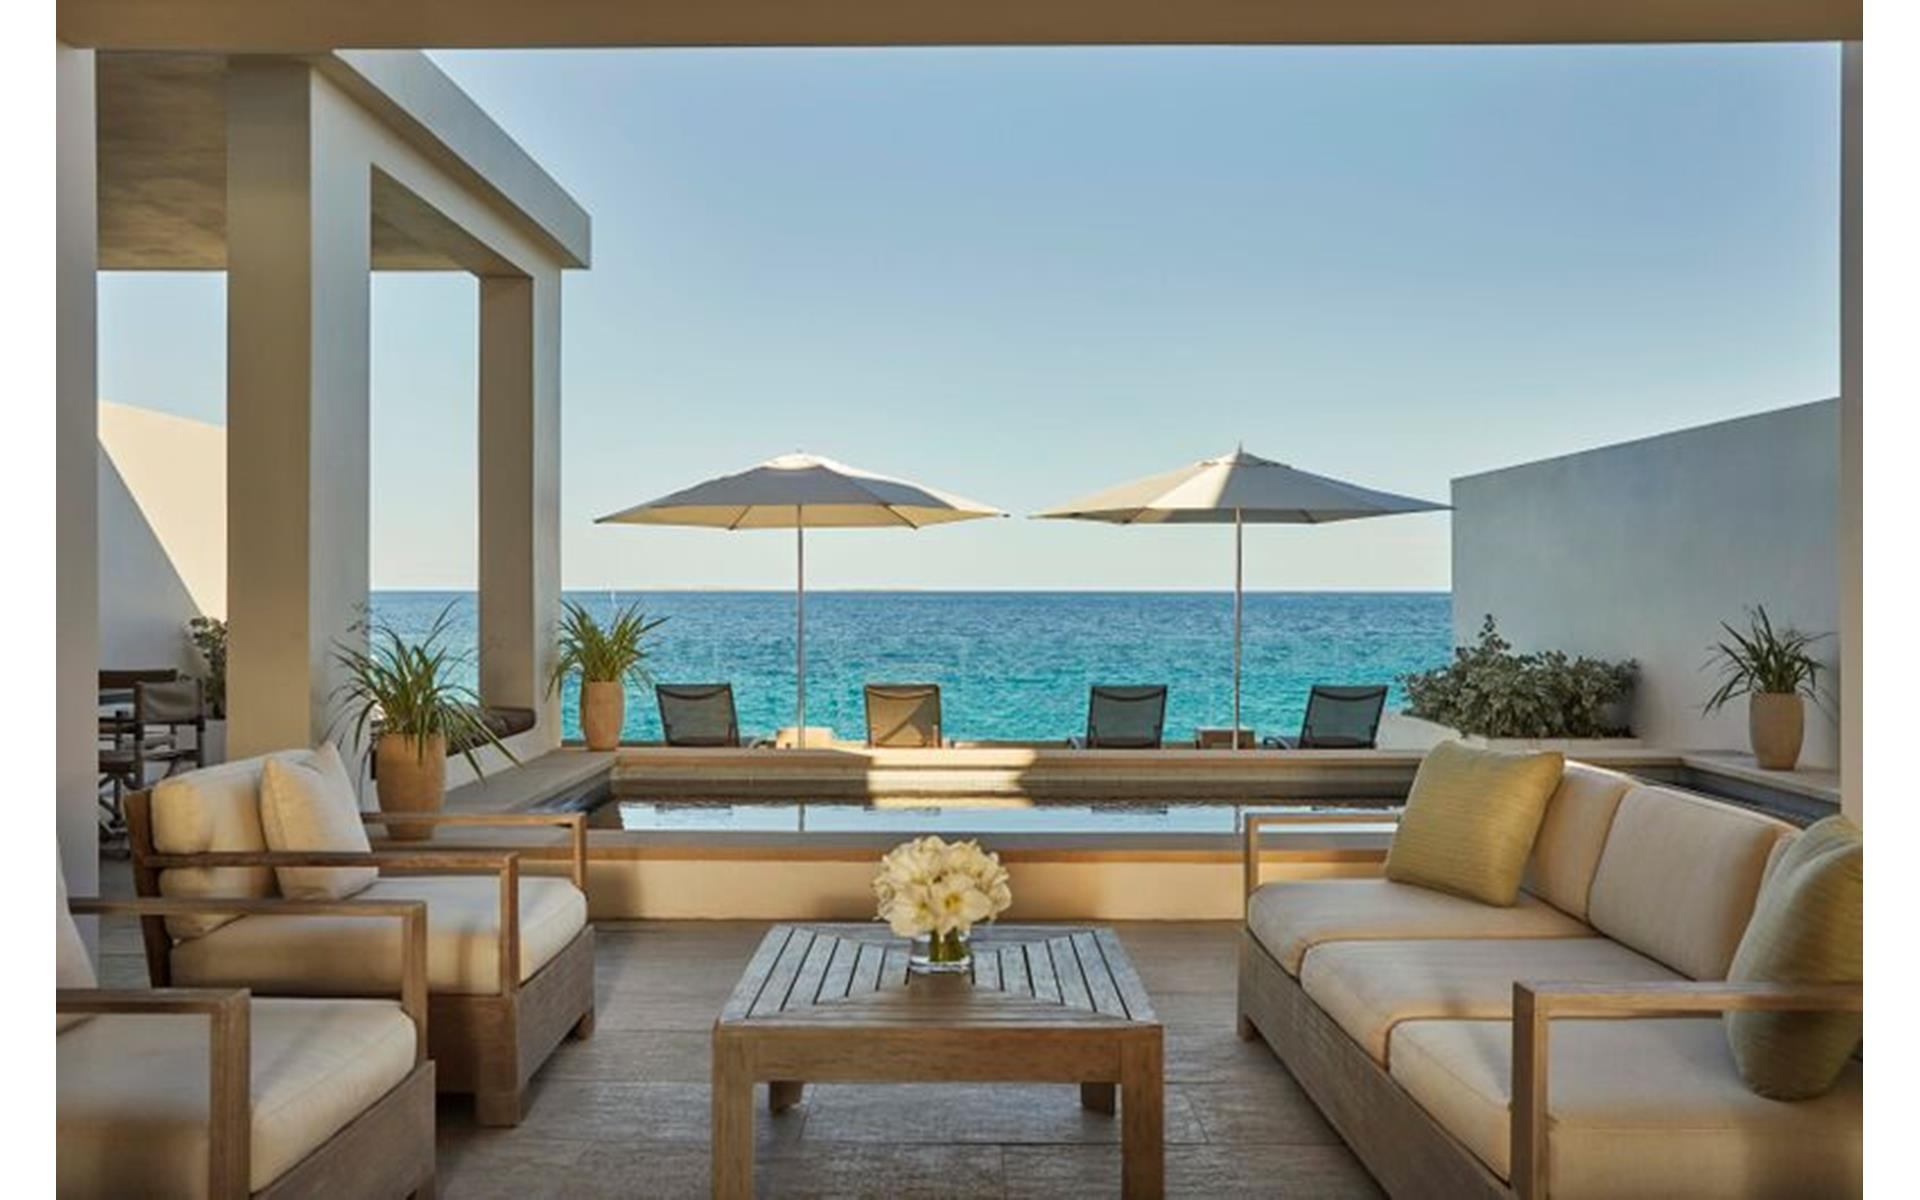 Four Season Resort Residence-44 apt 350, Anguilla, West Indies